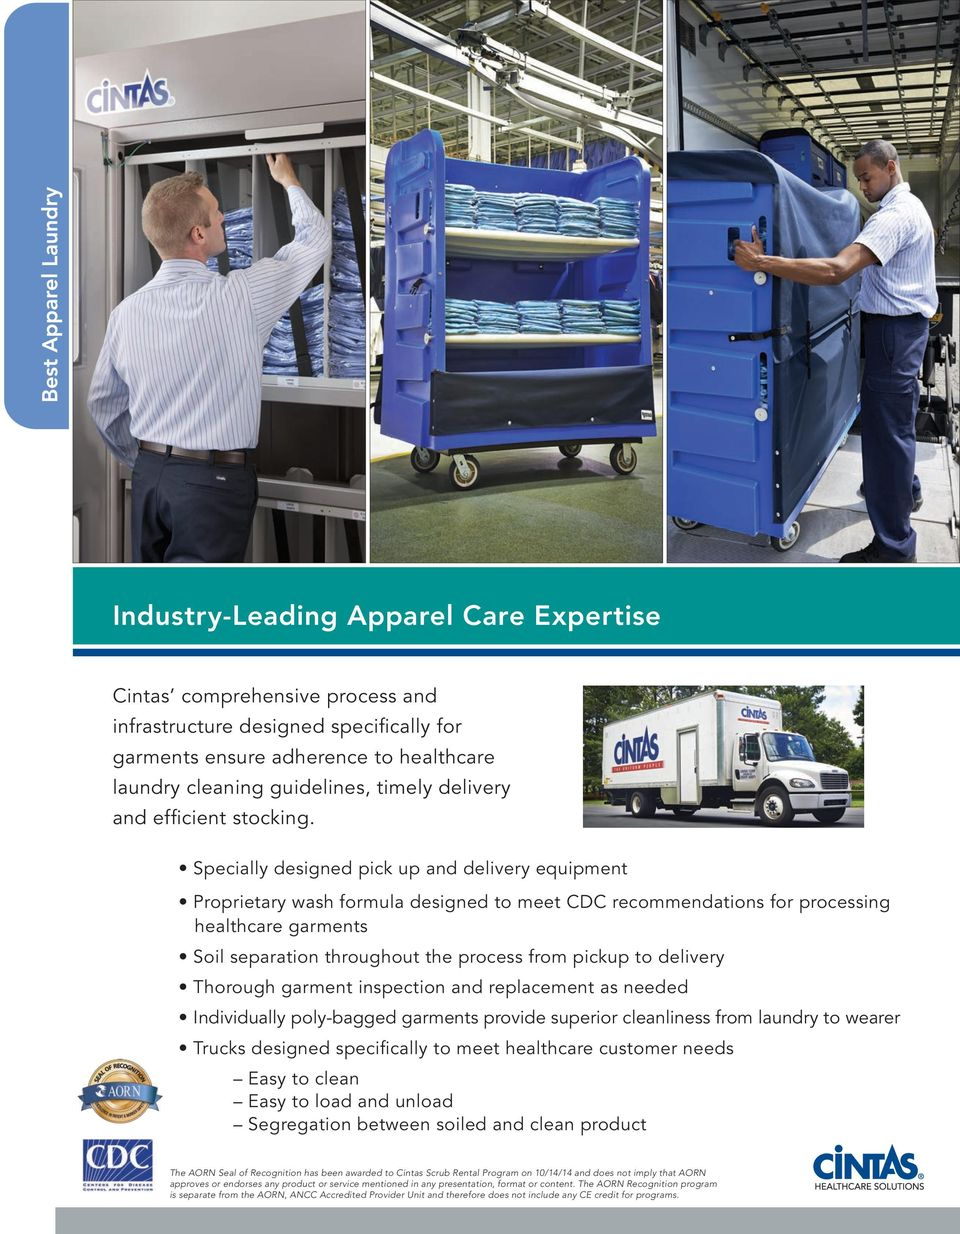 Specially designed pick up and delivery equipment Proprietary wash formula designed to meet CDC recommendations for processing healthcare garments Soil separation throughout the process from pickup